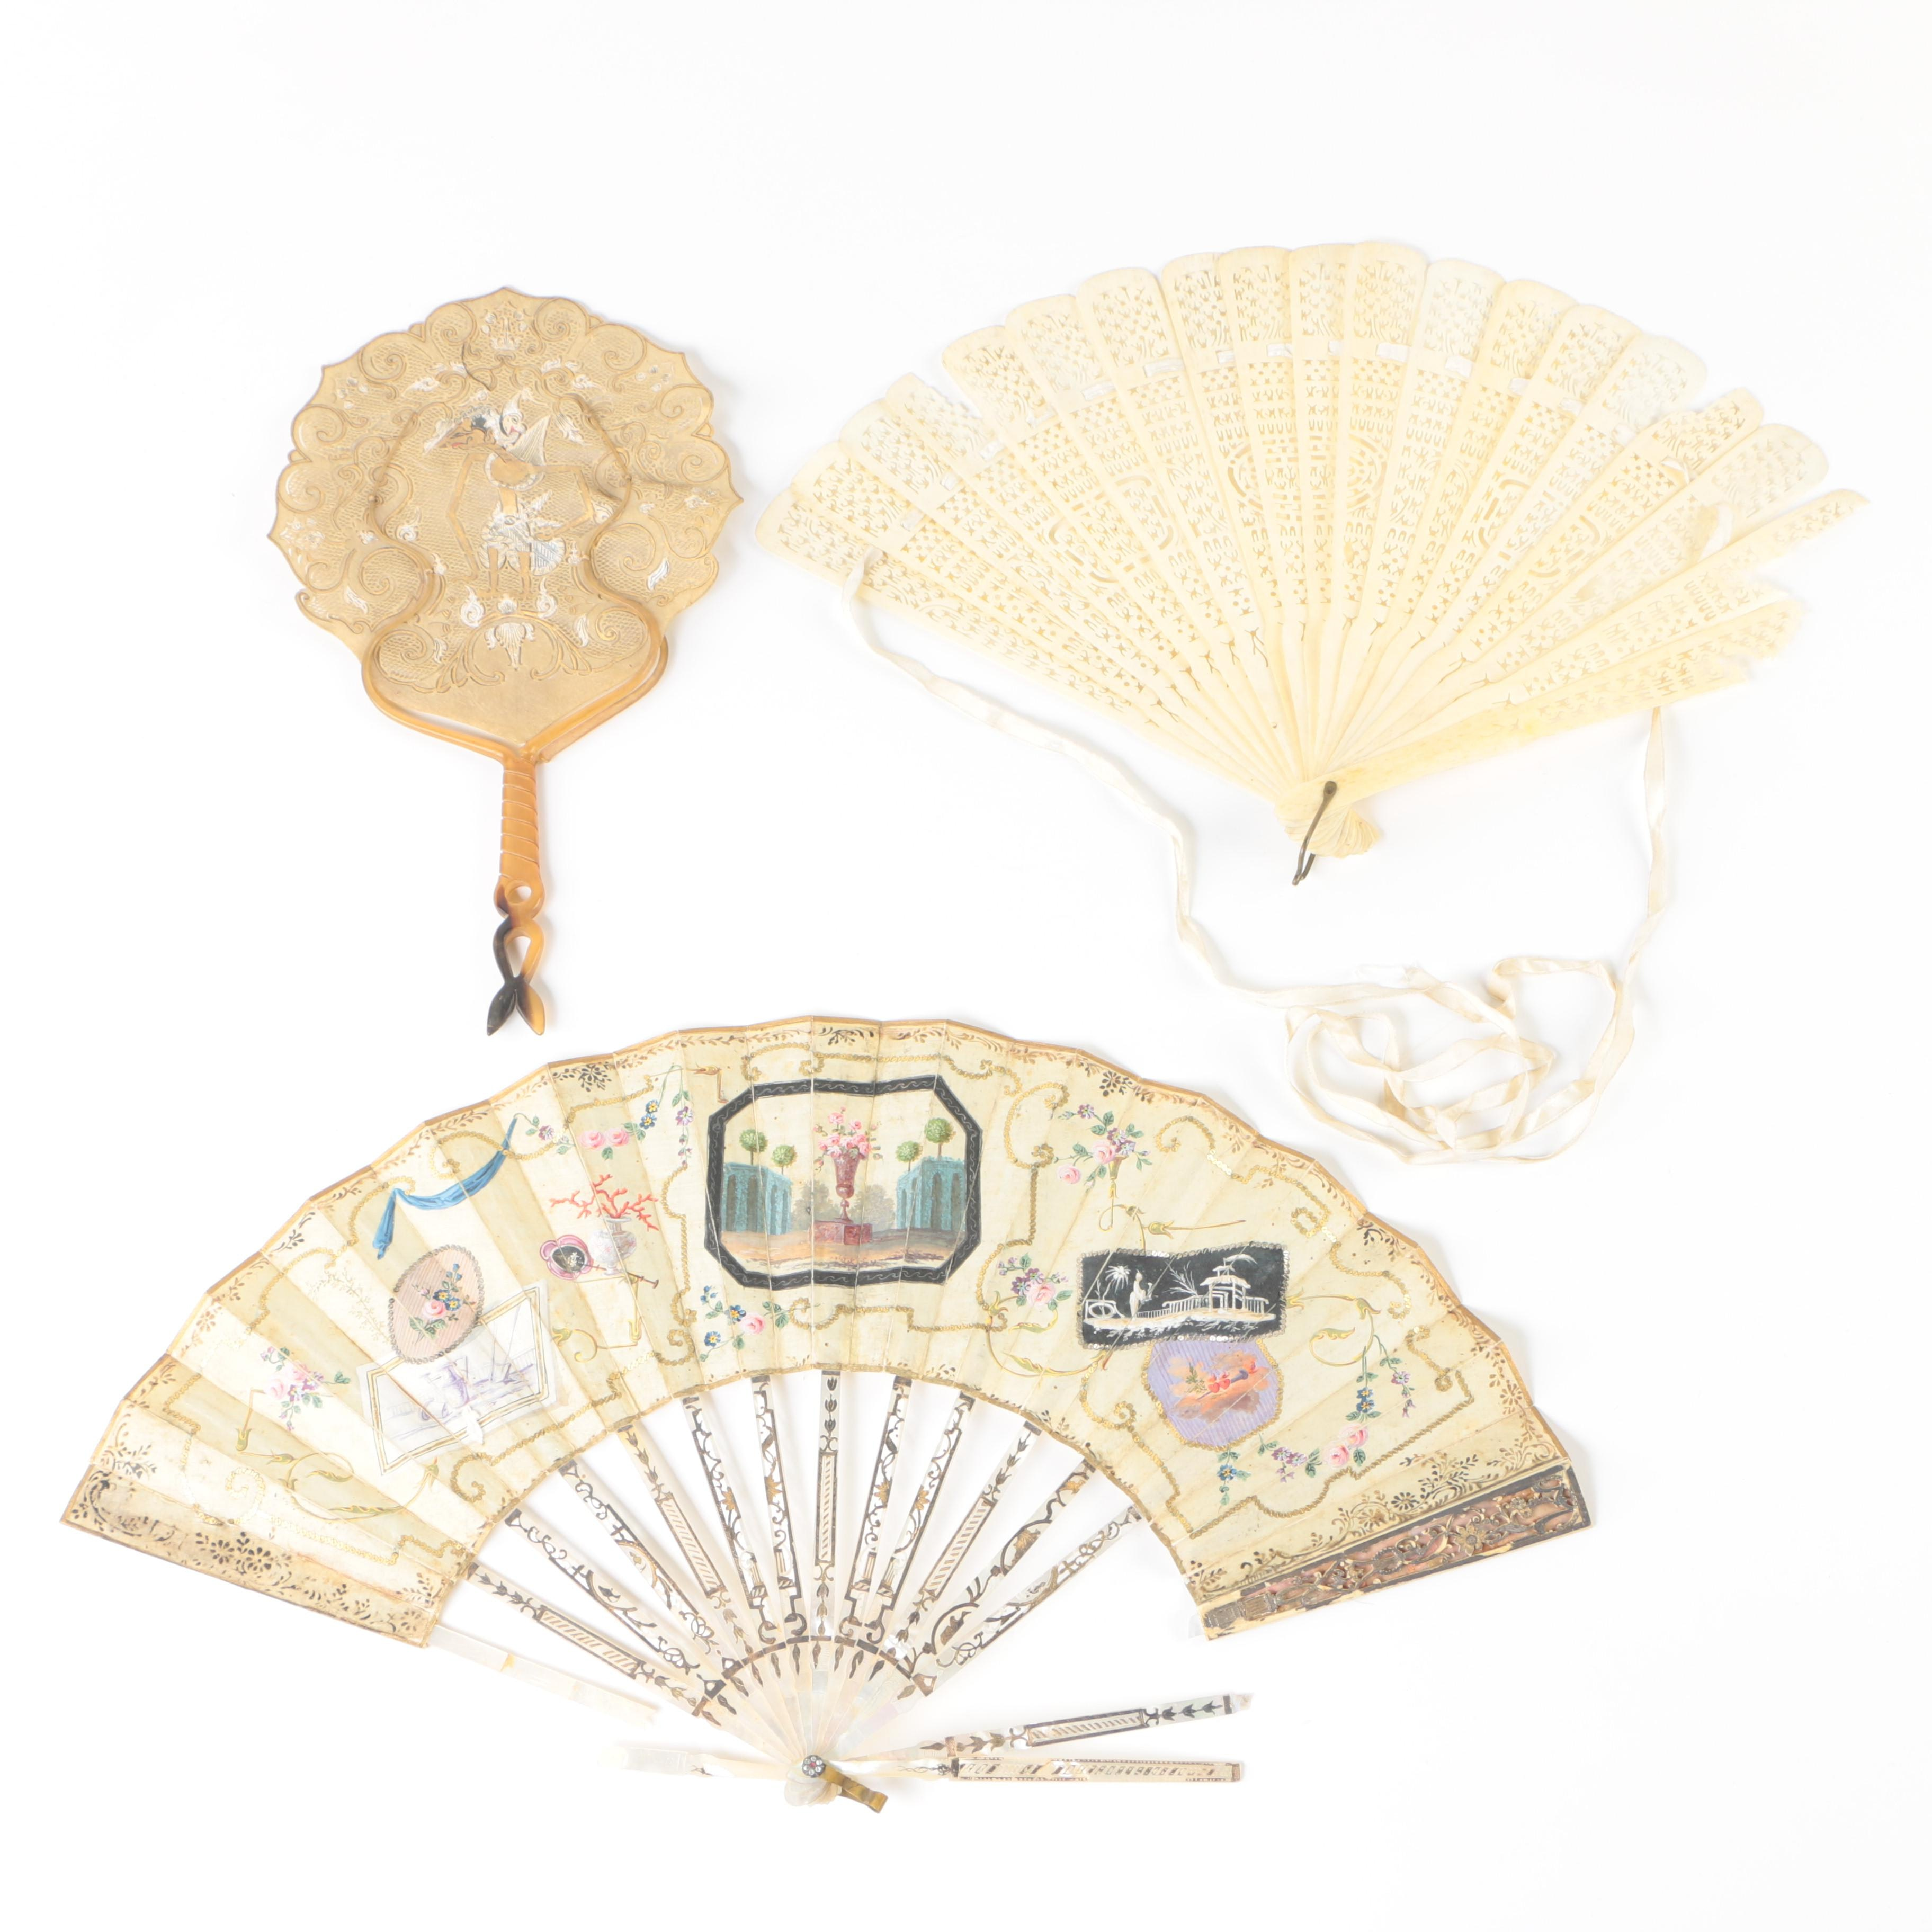 Antique Hand-Painted Mother of Pearl and Bone Fans featuring Embellishments